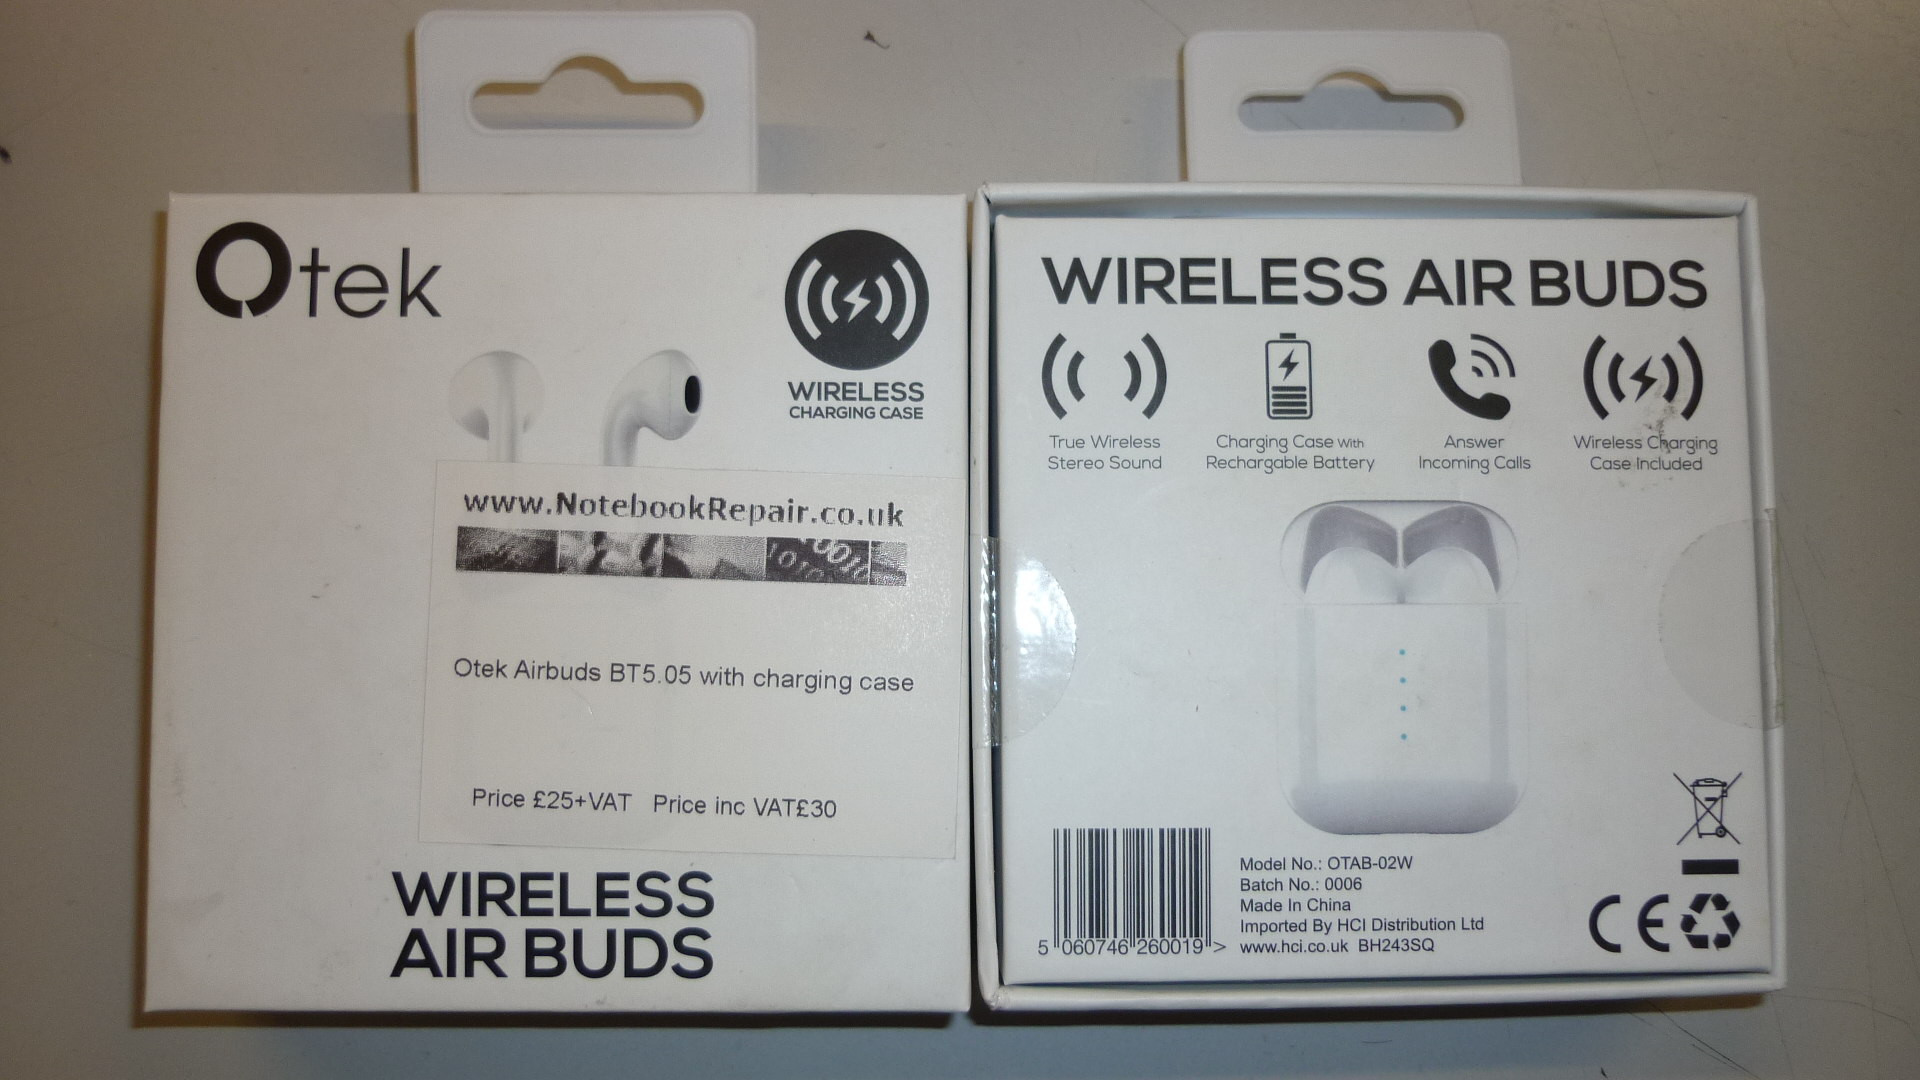 Otek Wireless Air Buds